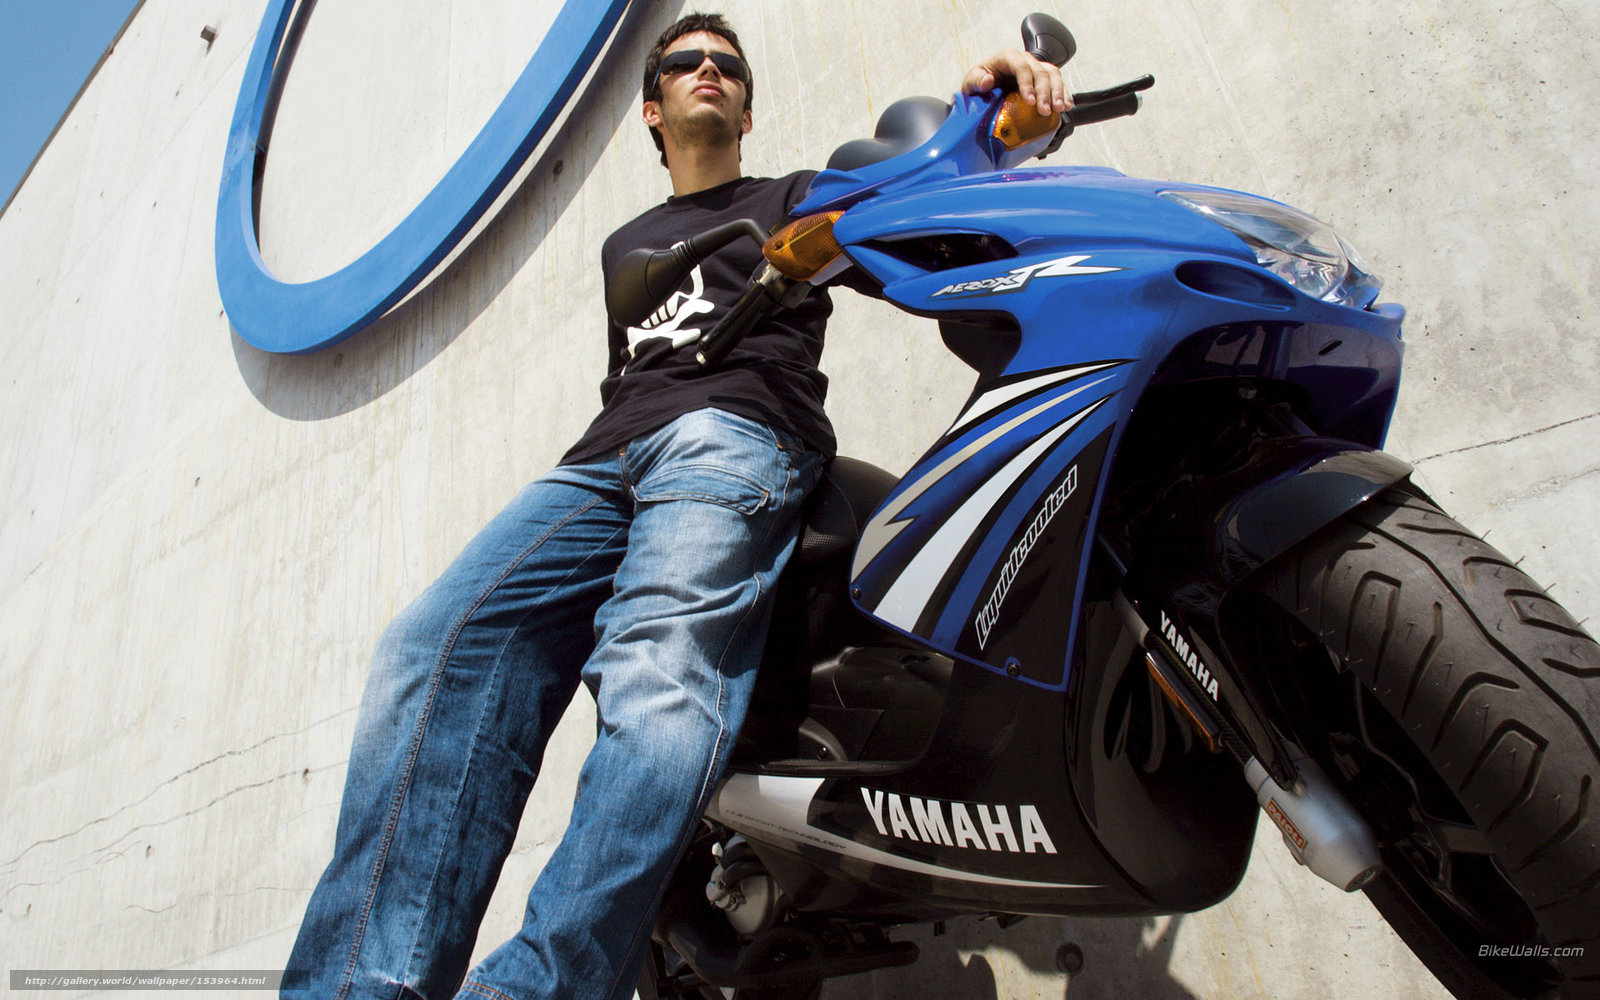 Download Yamaha Super Bike Wallpapers To Your Cell Phone  Auto Design